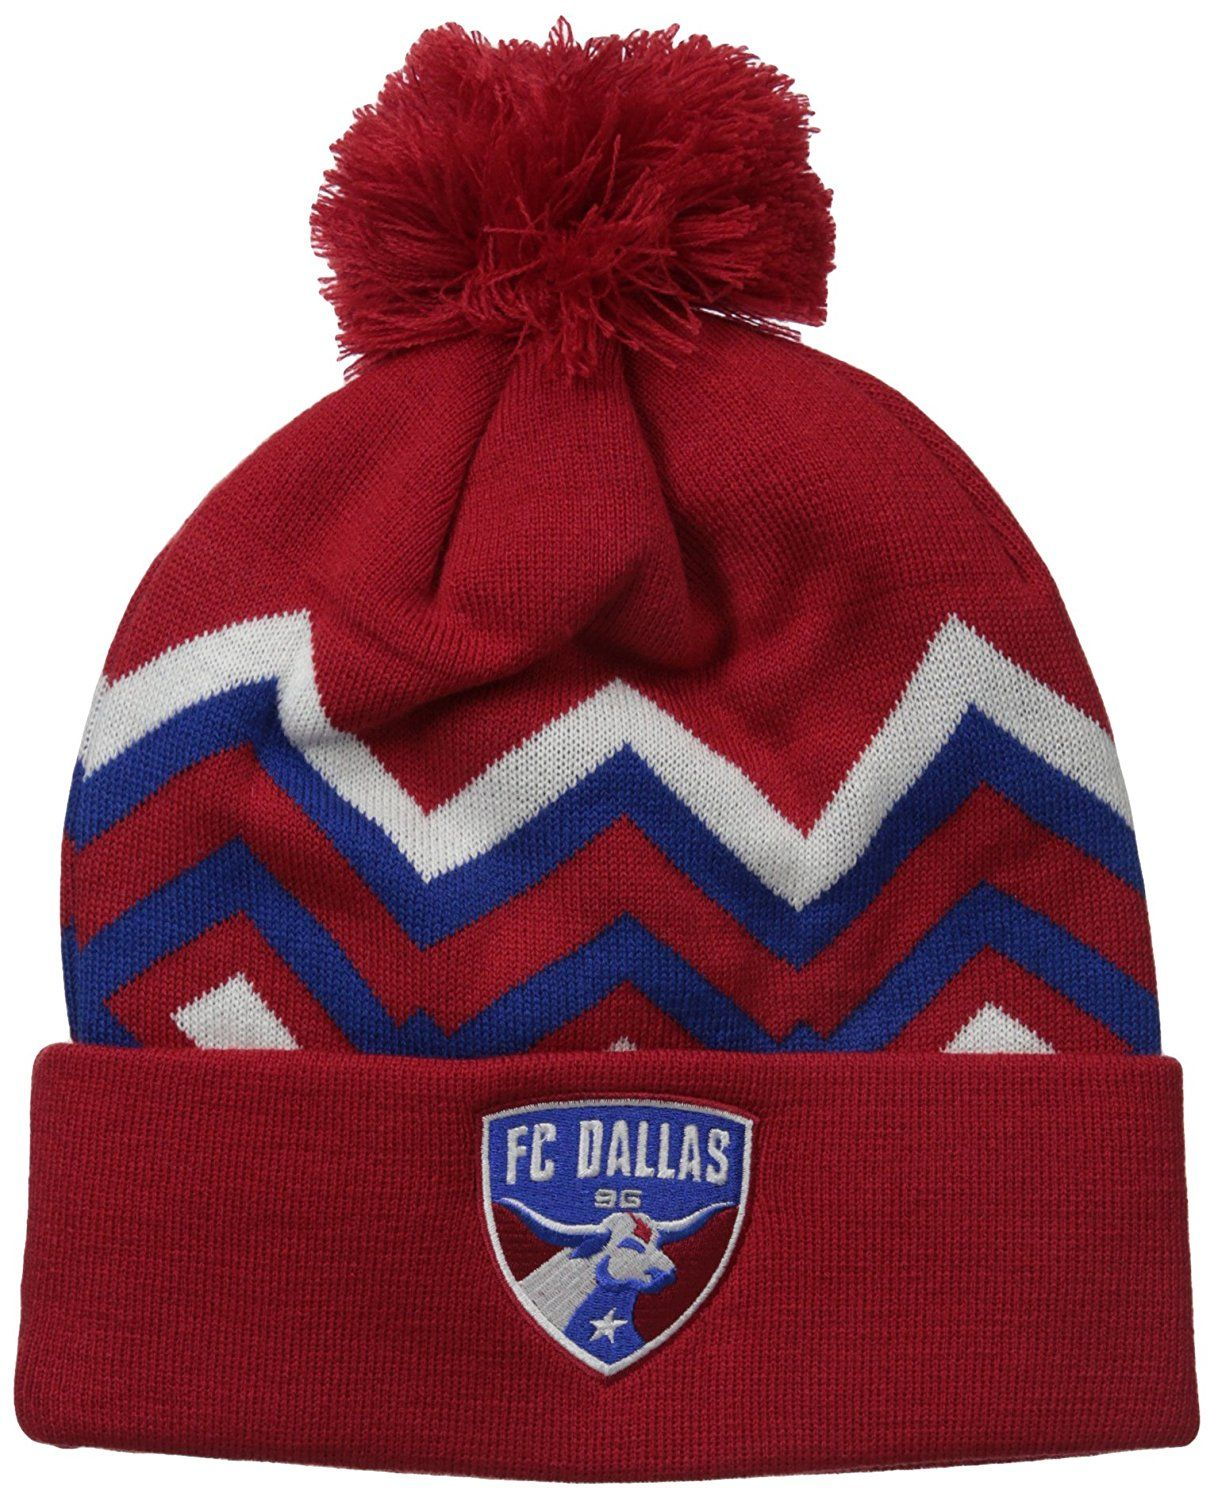 cheap for discount f9011 038d1 ... shopping fc dallas mls mens cuffed knit with pom price 10.22 9d74f 8234f